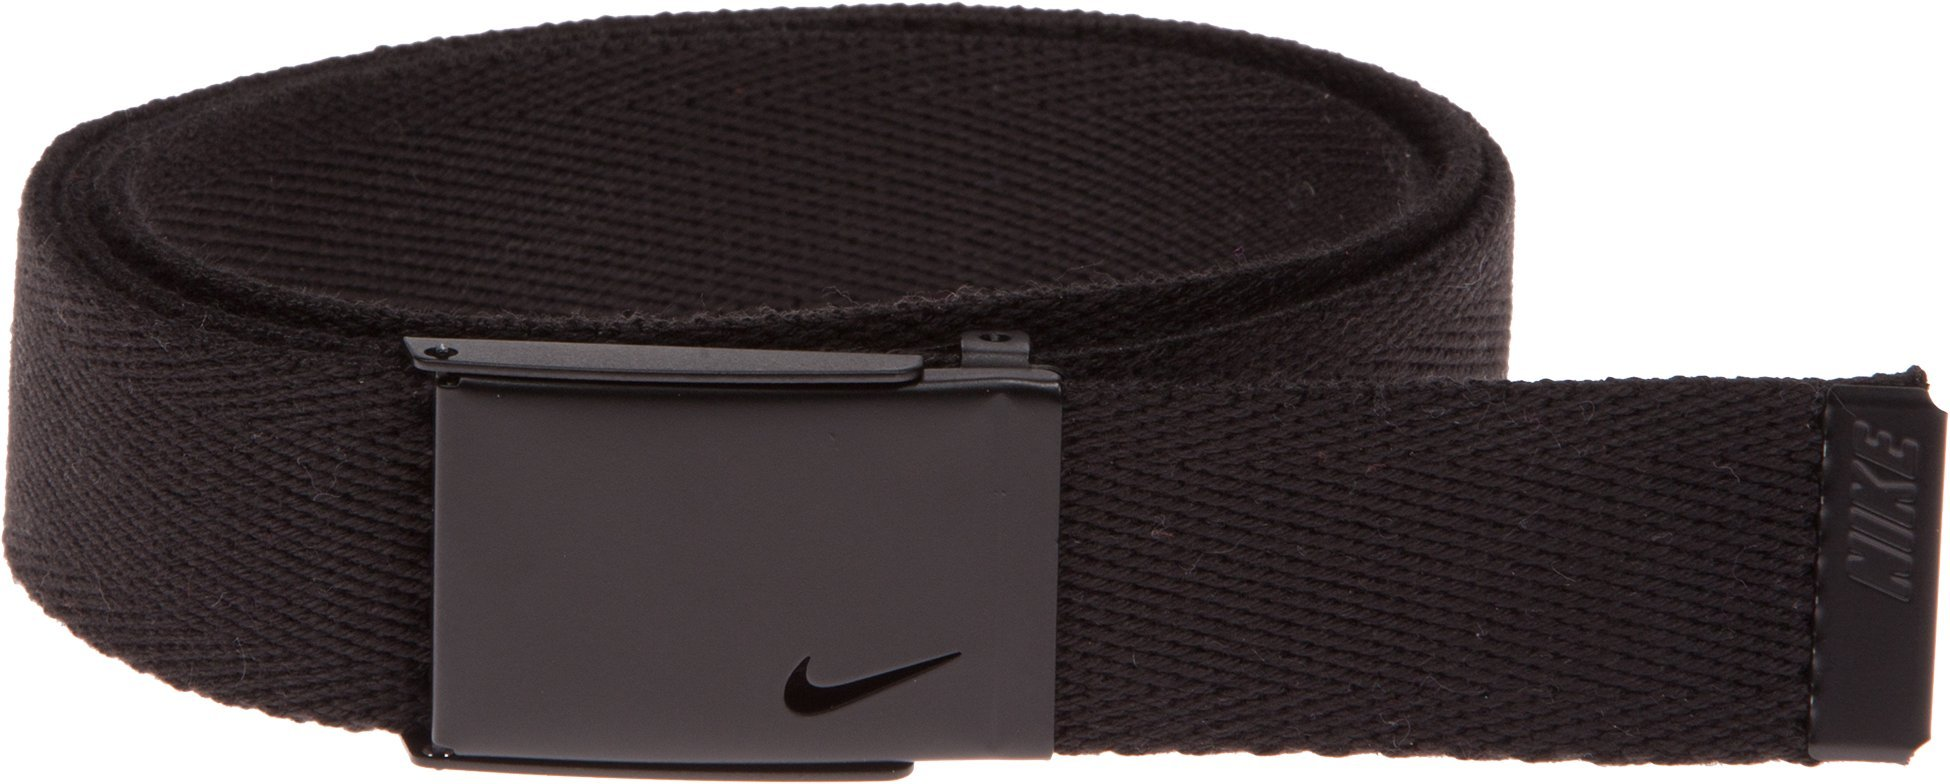 Nike Golf Women's Tech Essential Single Web Belt